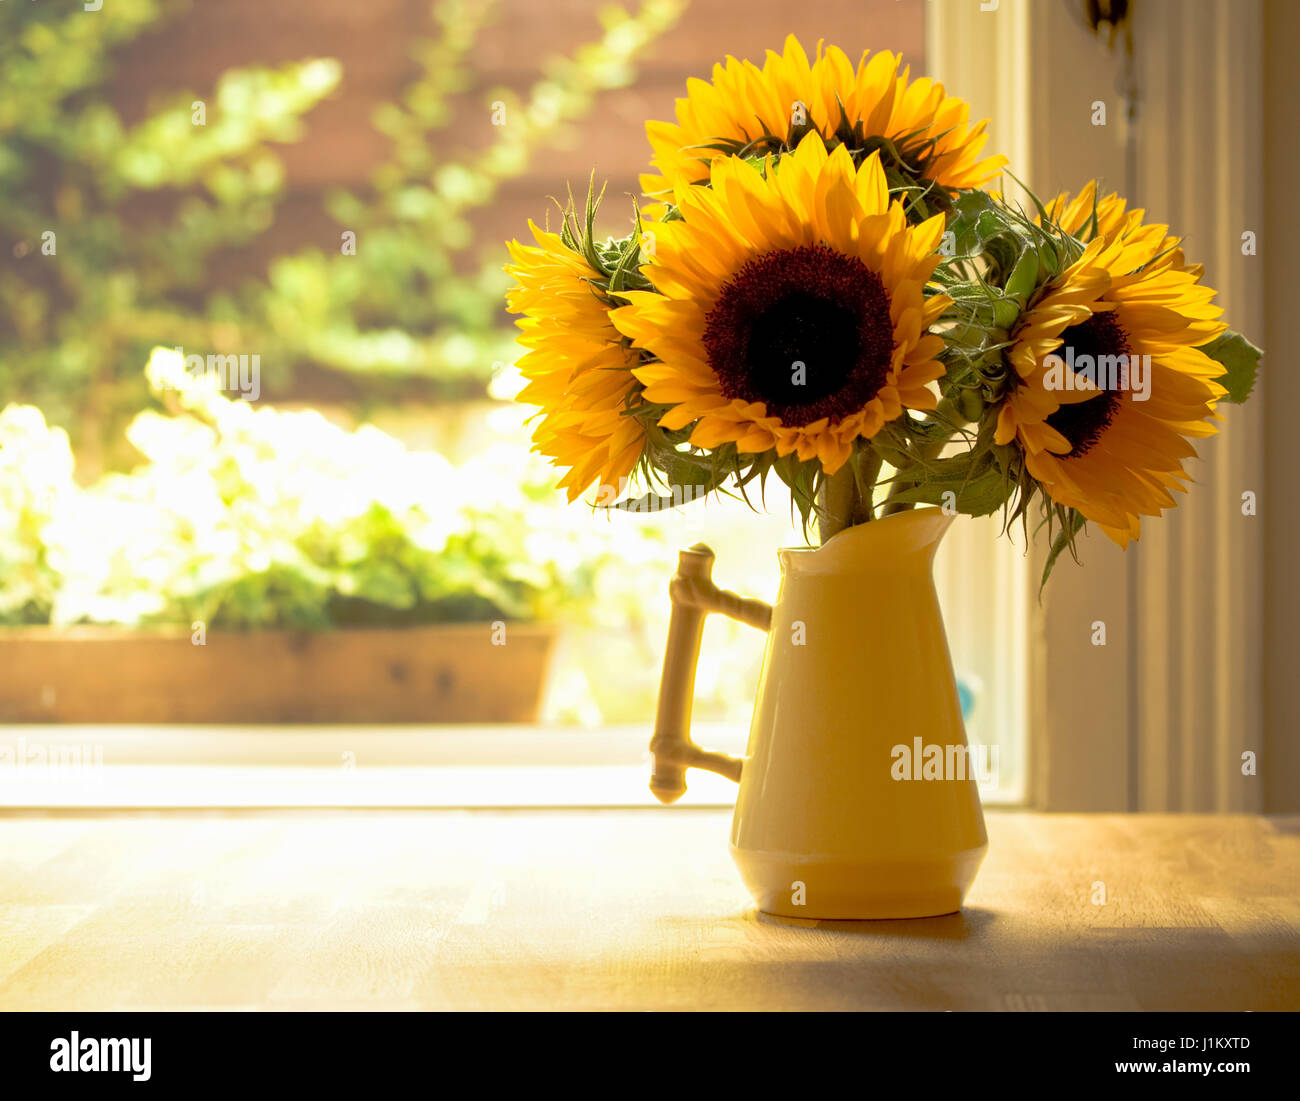 sunflowers-in-a-china-vase-on-a-rustic-k